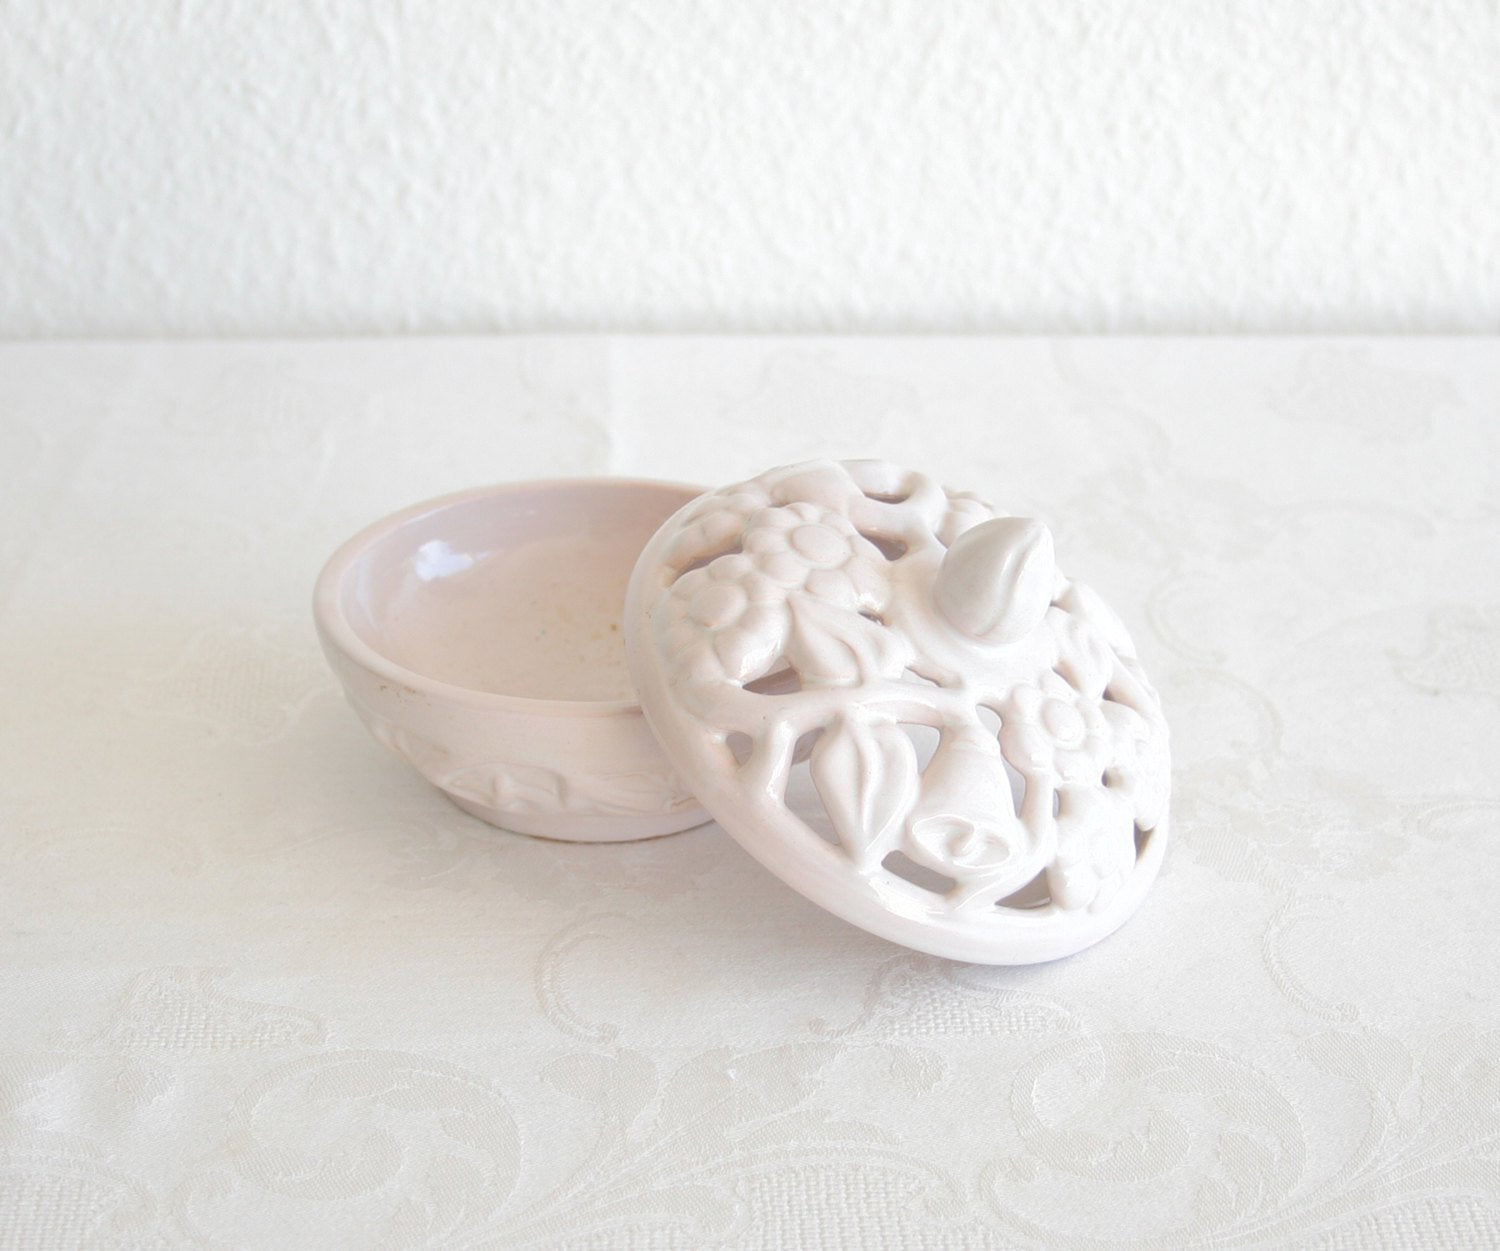 L. HJORTH Round White Glazed Openwork Ceramic Lidded Box - Mollaris.com